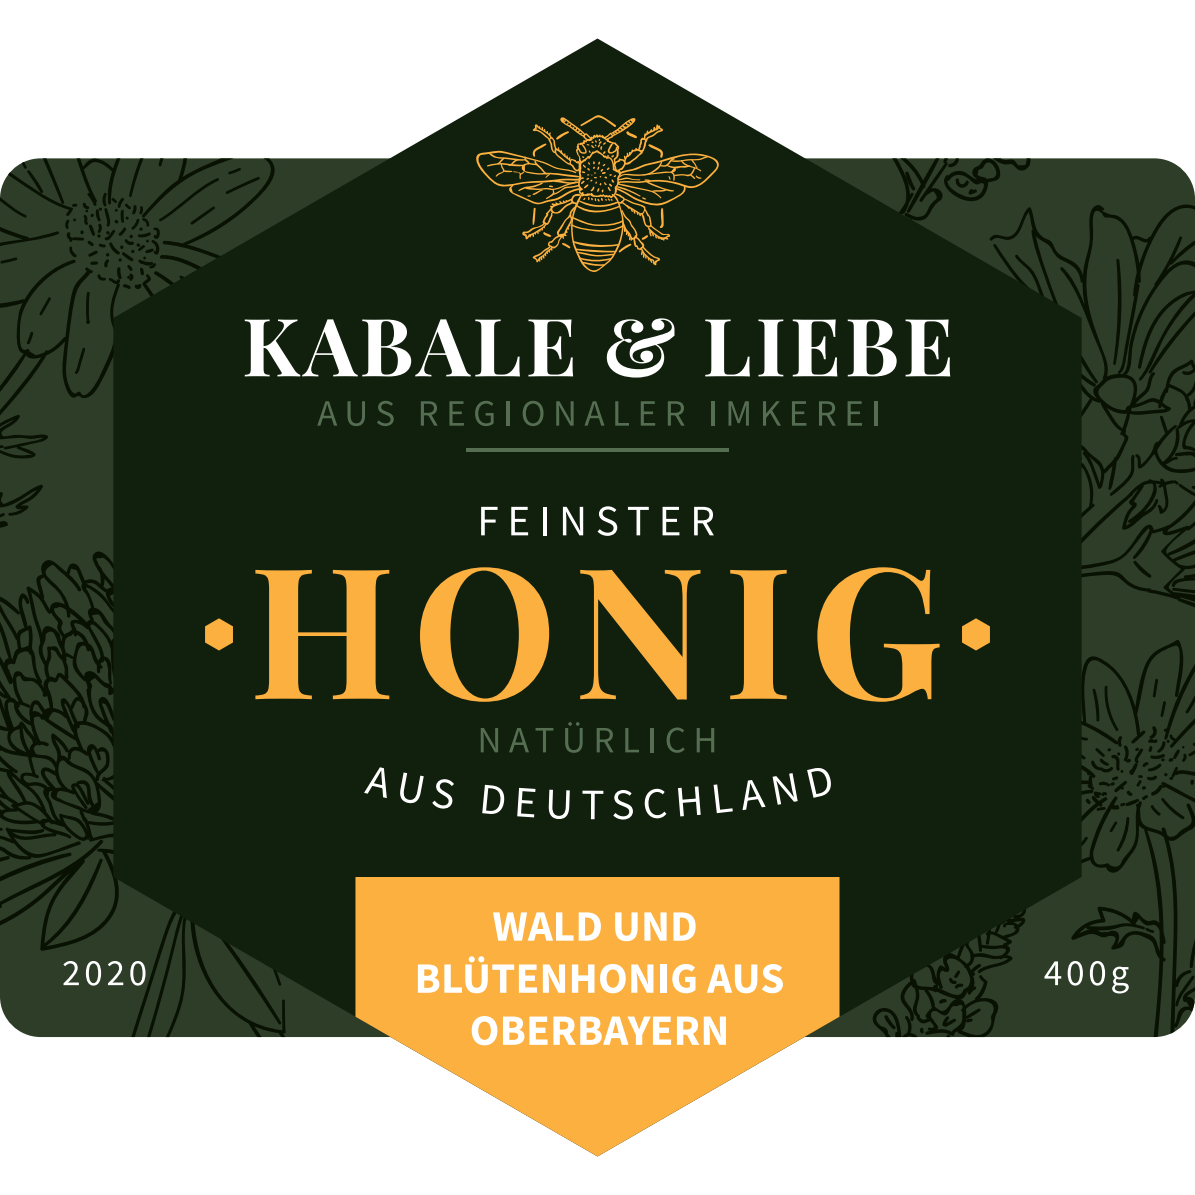 Kabale & Liebe - Flower label